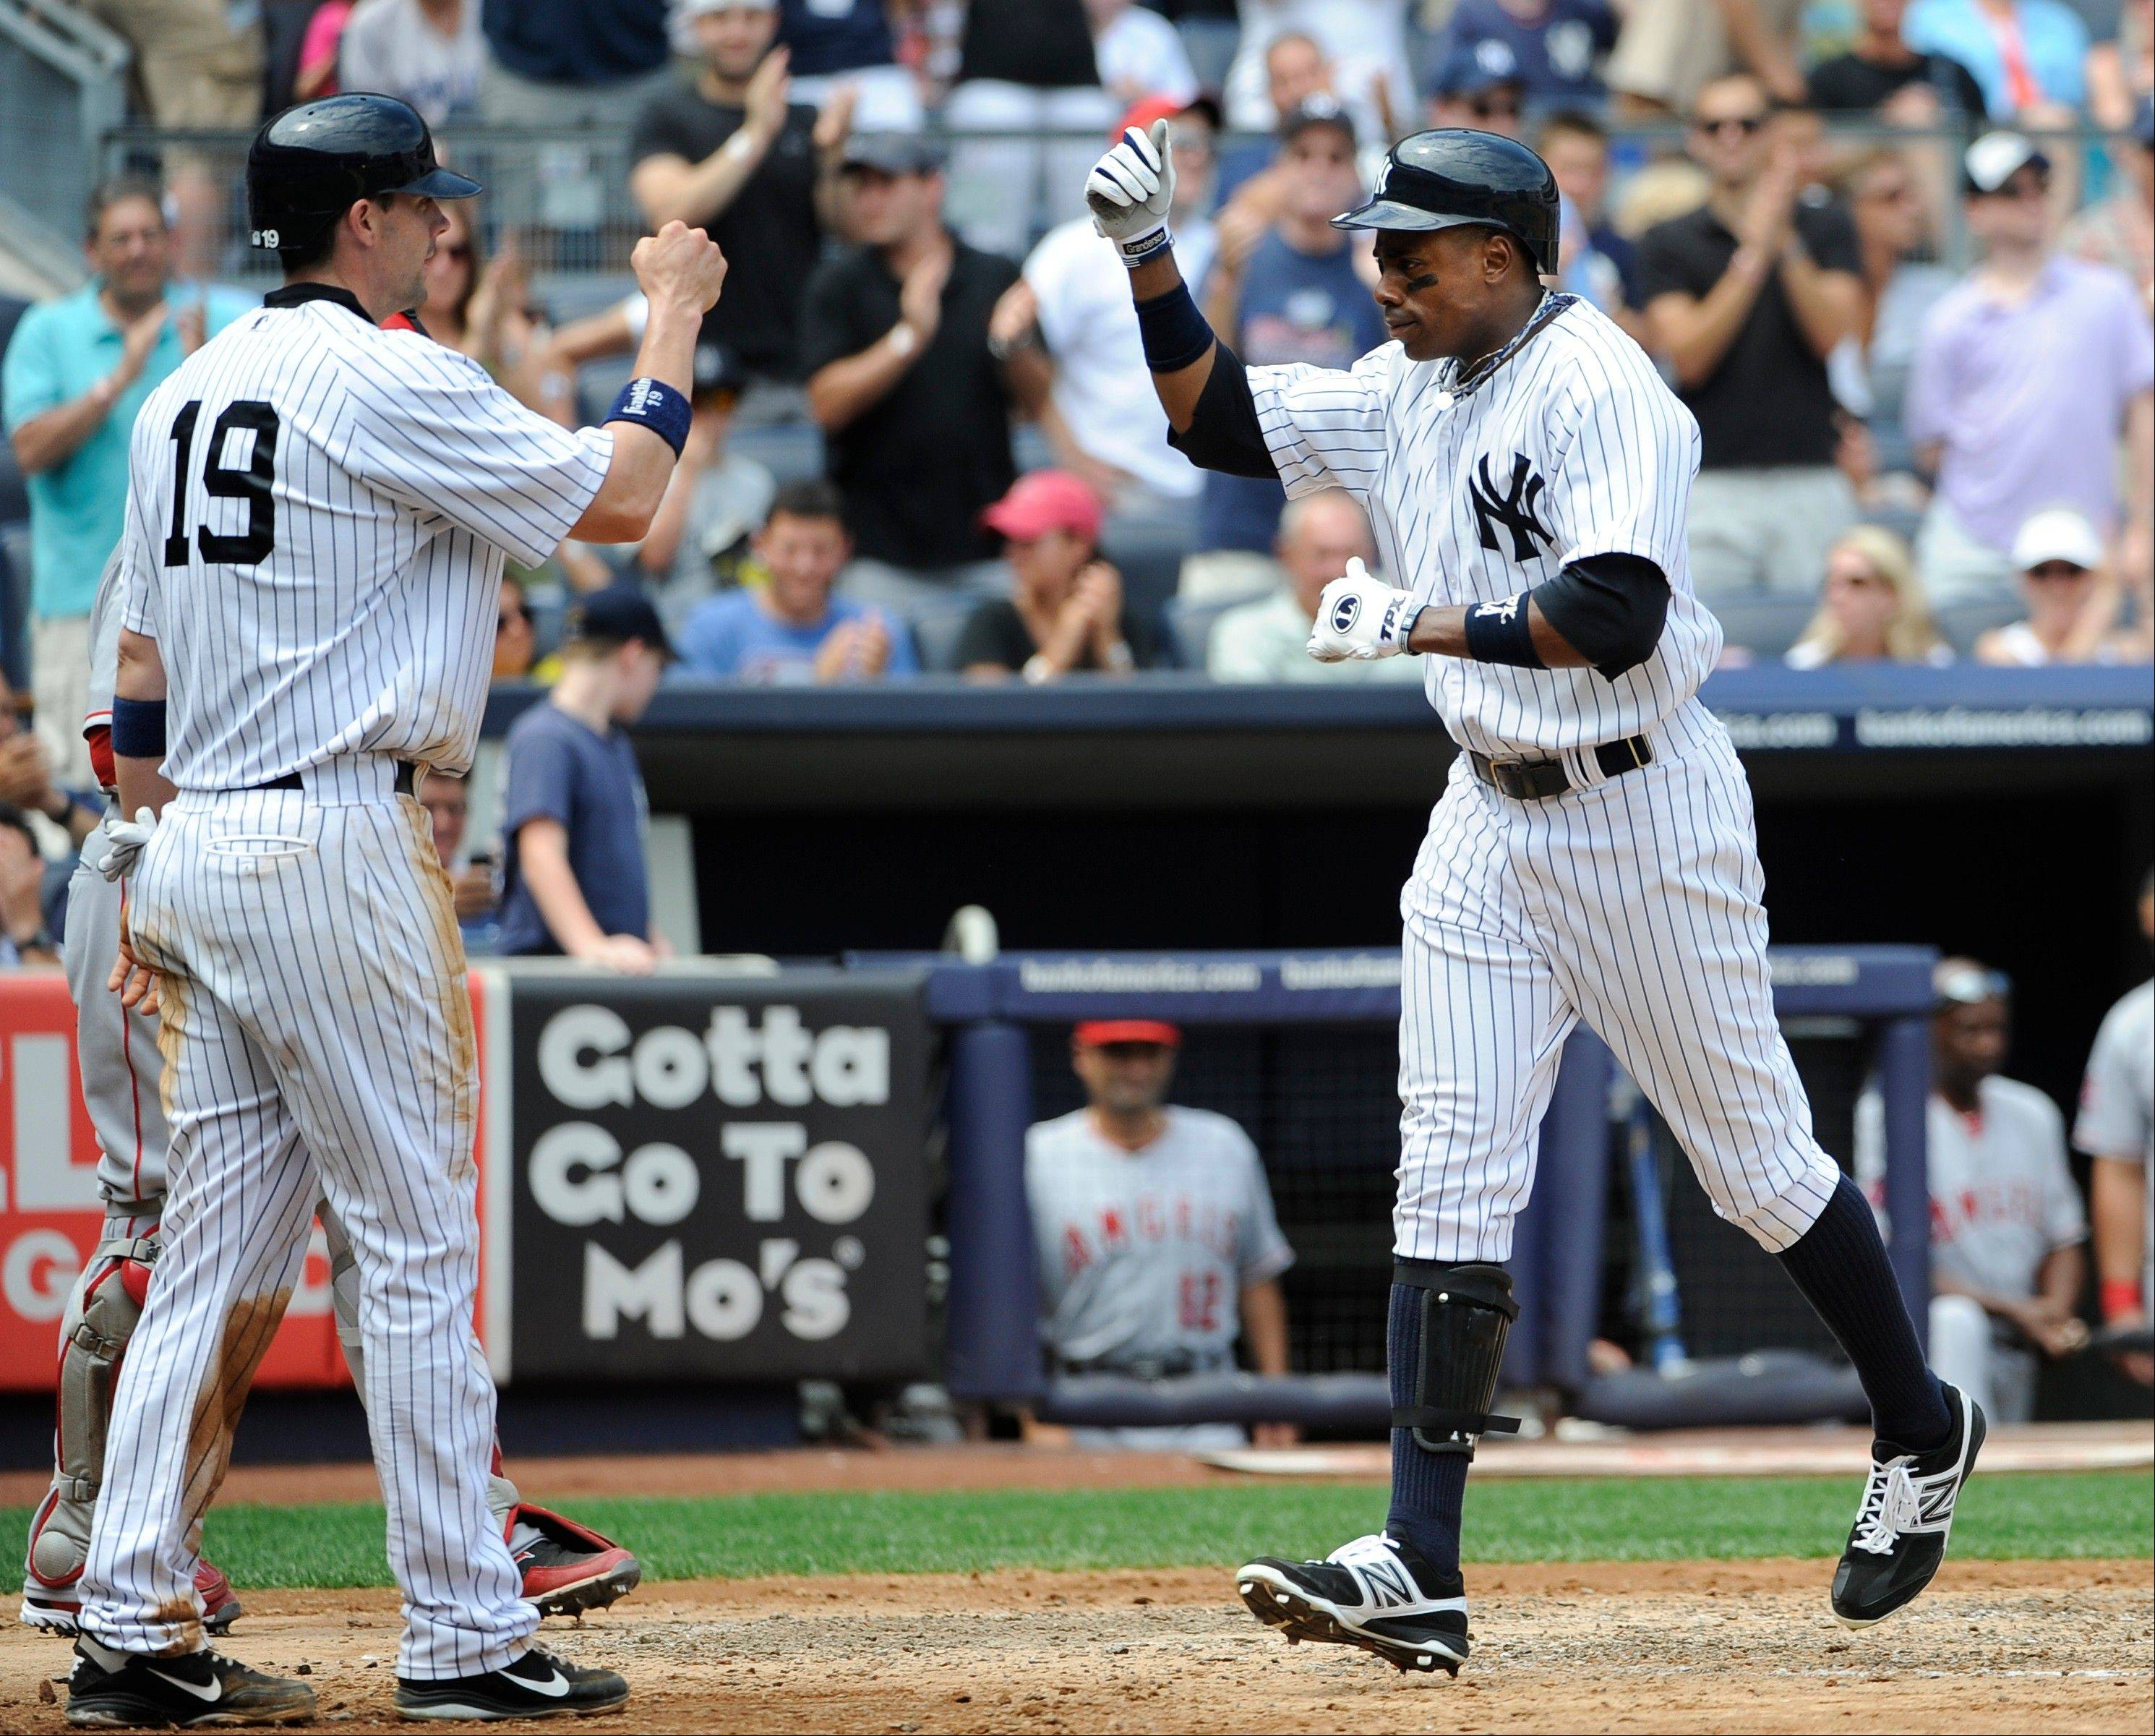 The New York Yankees' Chris Stewart (19) greets Curtis Granderson at home plate Saturday after Granderson hit a two-run home run off Los Angeles Angels starting pitcher Jerome Williams in the third inning at Yankee Stadium in New York. The Yankees won 5-3.